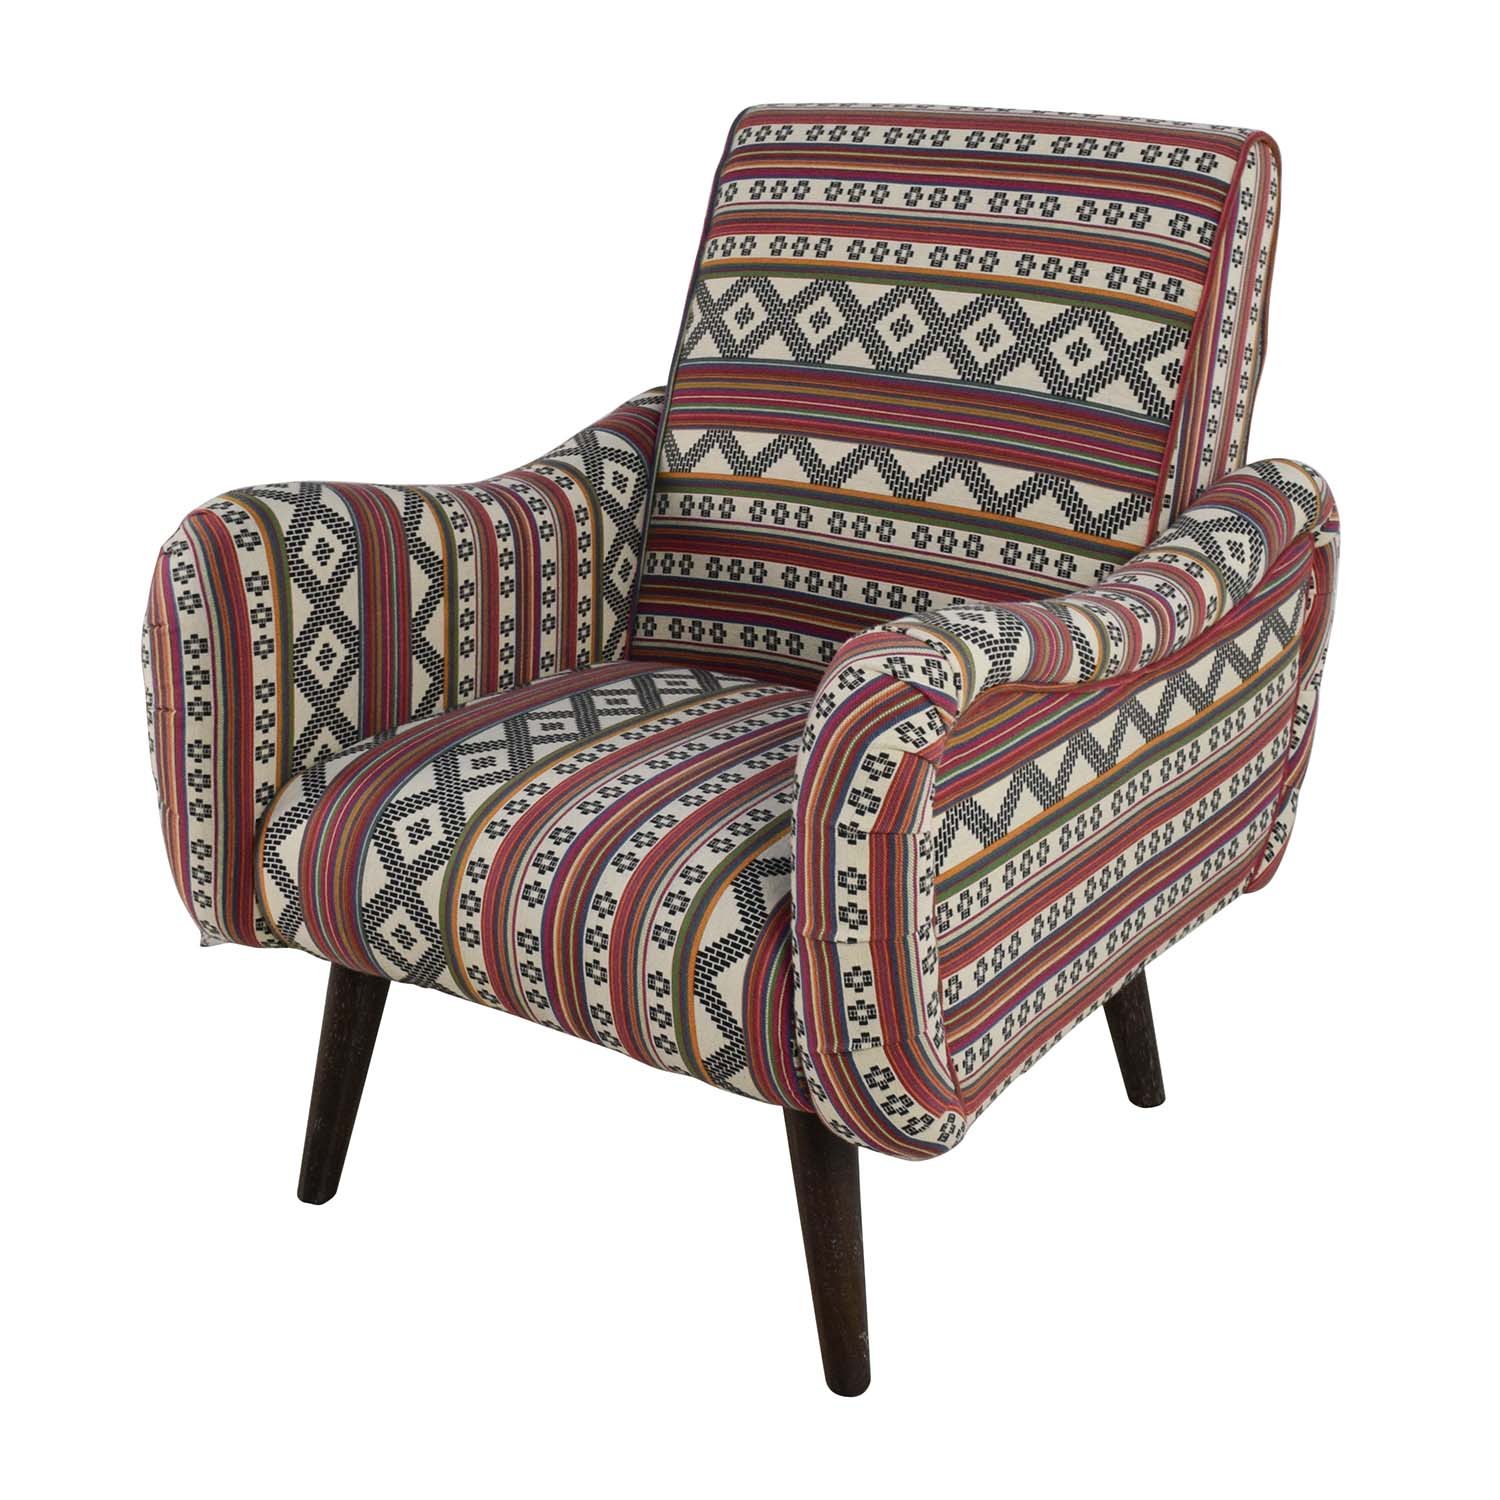 75% OFF - Aztec Pattern Accent Armchair / Chairs